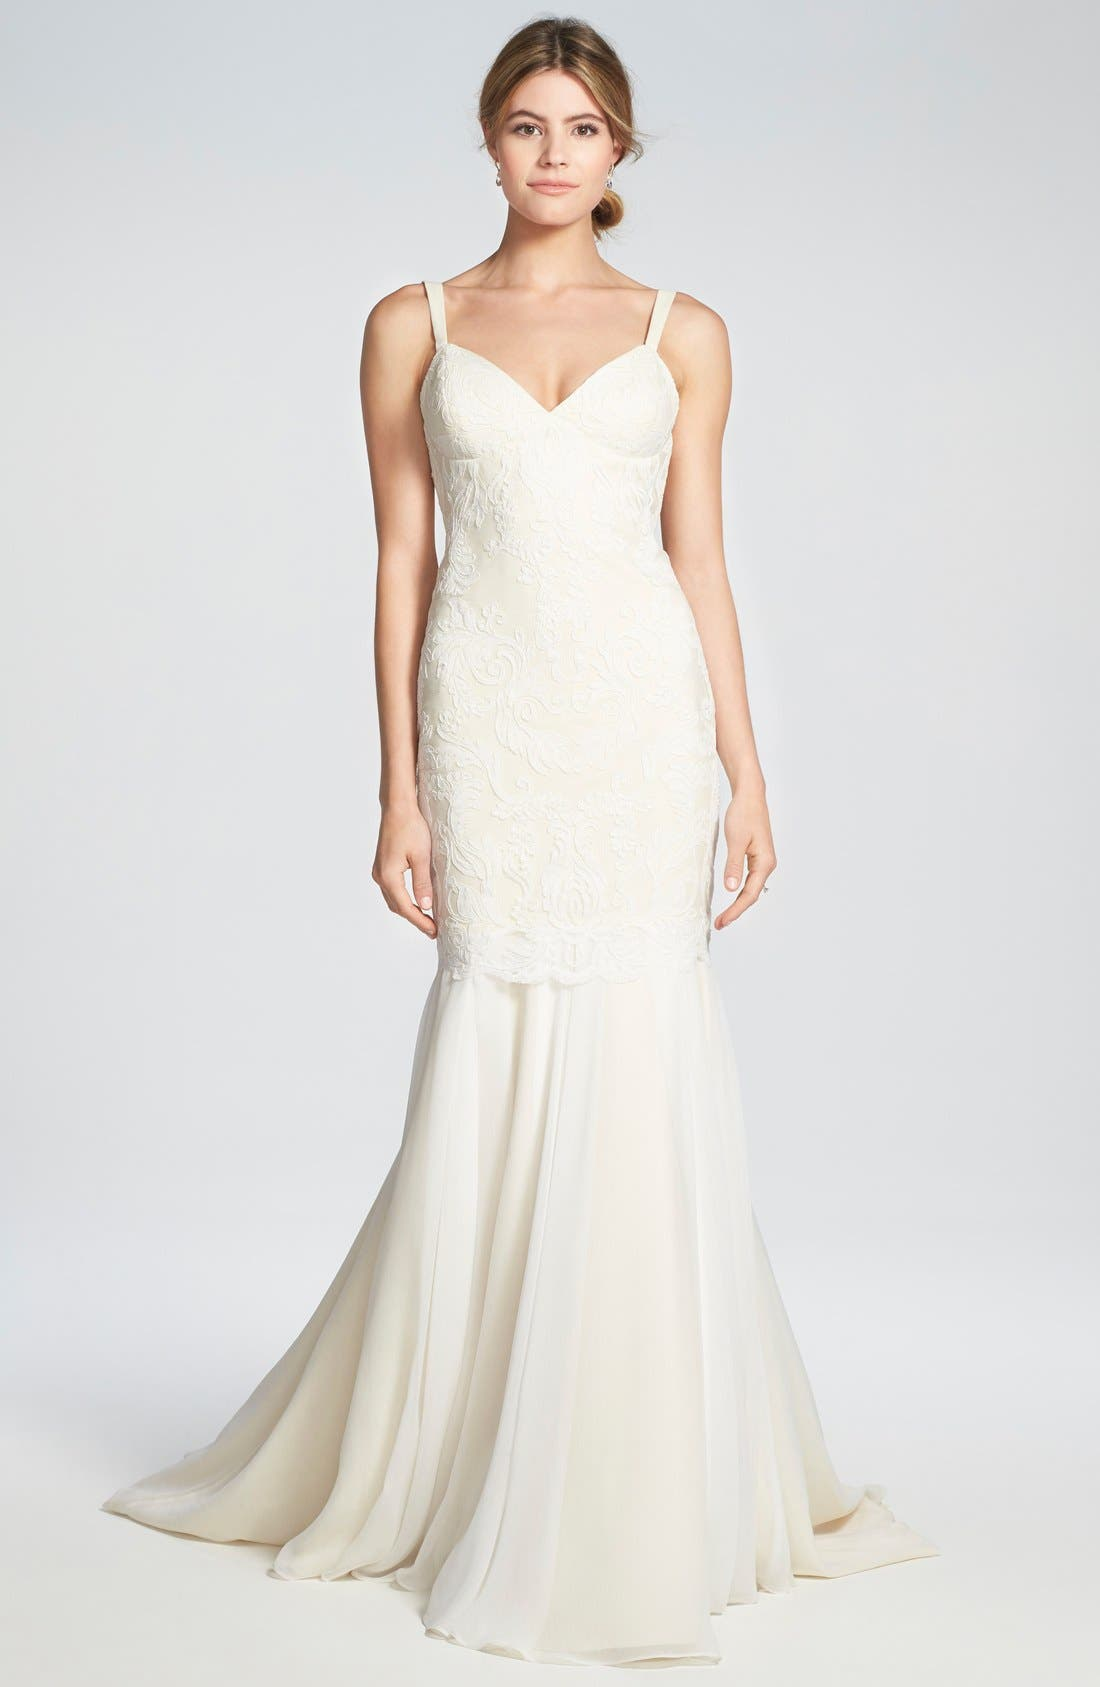 Katie May 'Monaco' Lace & Chiffon Trumpet Gown